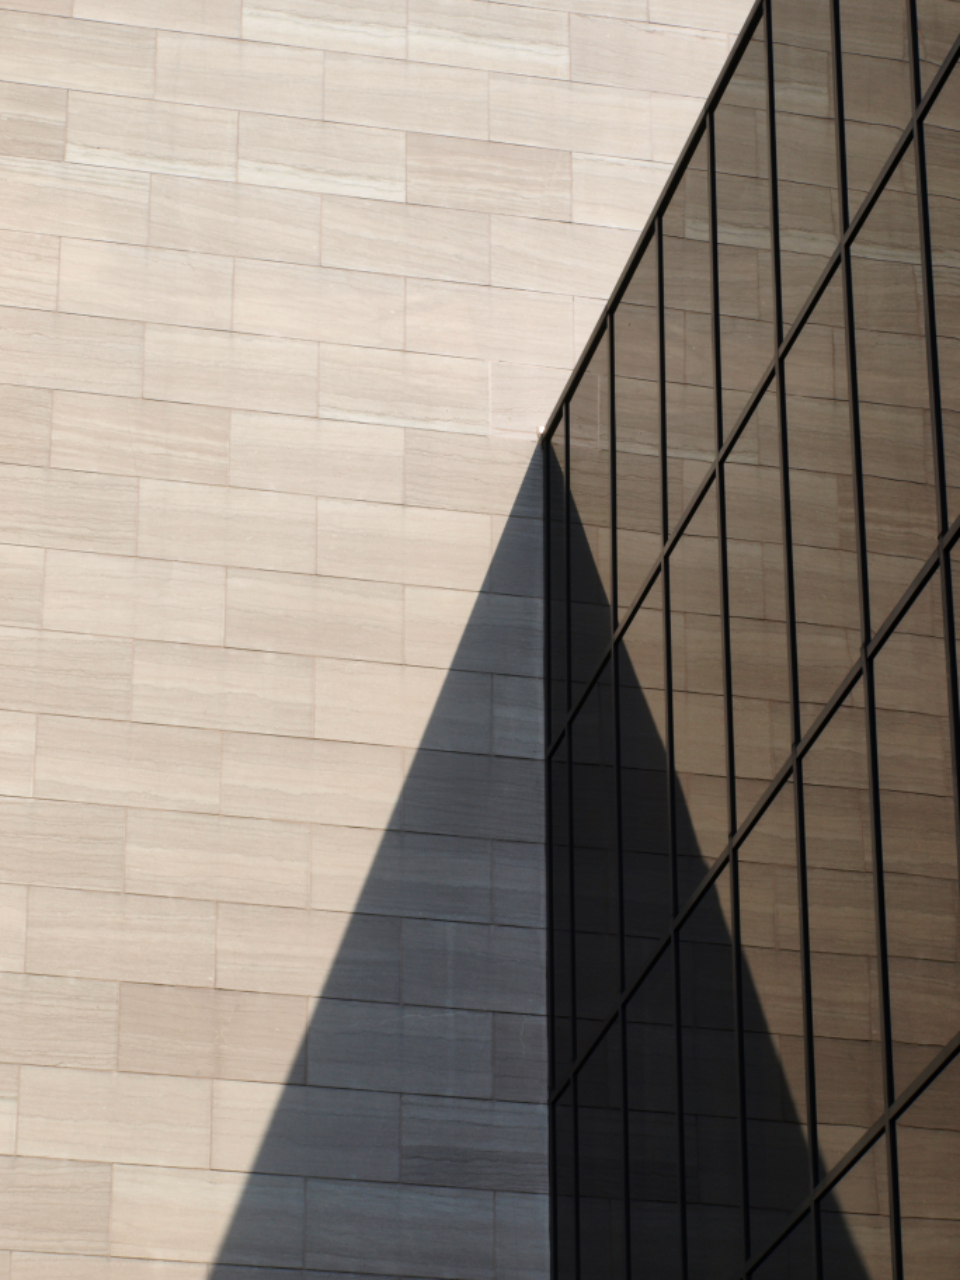 architecture abstract structure building glass shadow perspective city modern design exterior business office futuristic